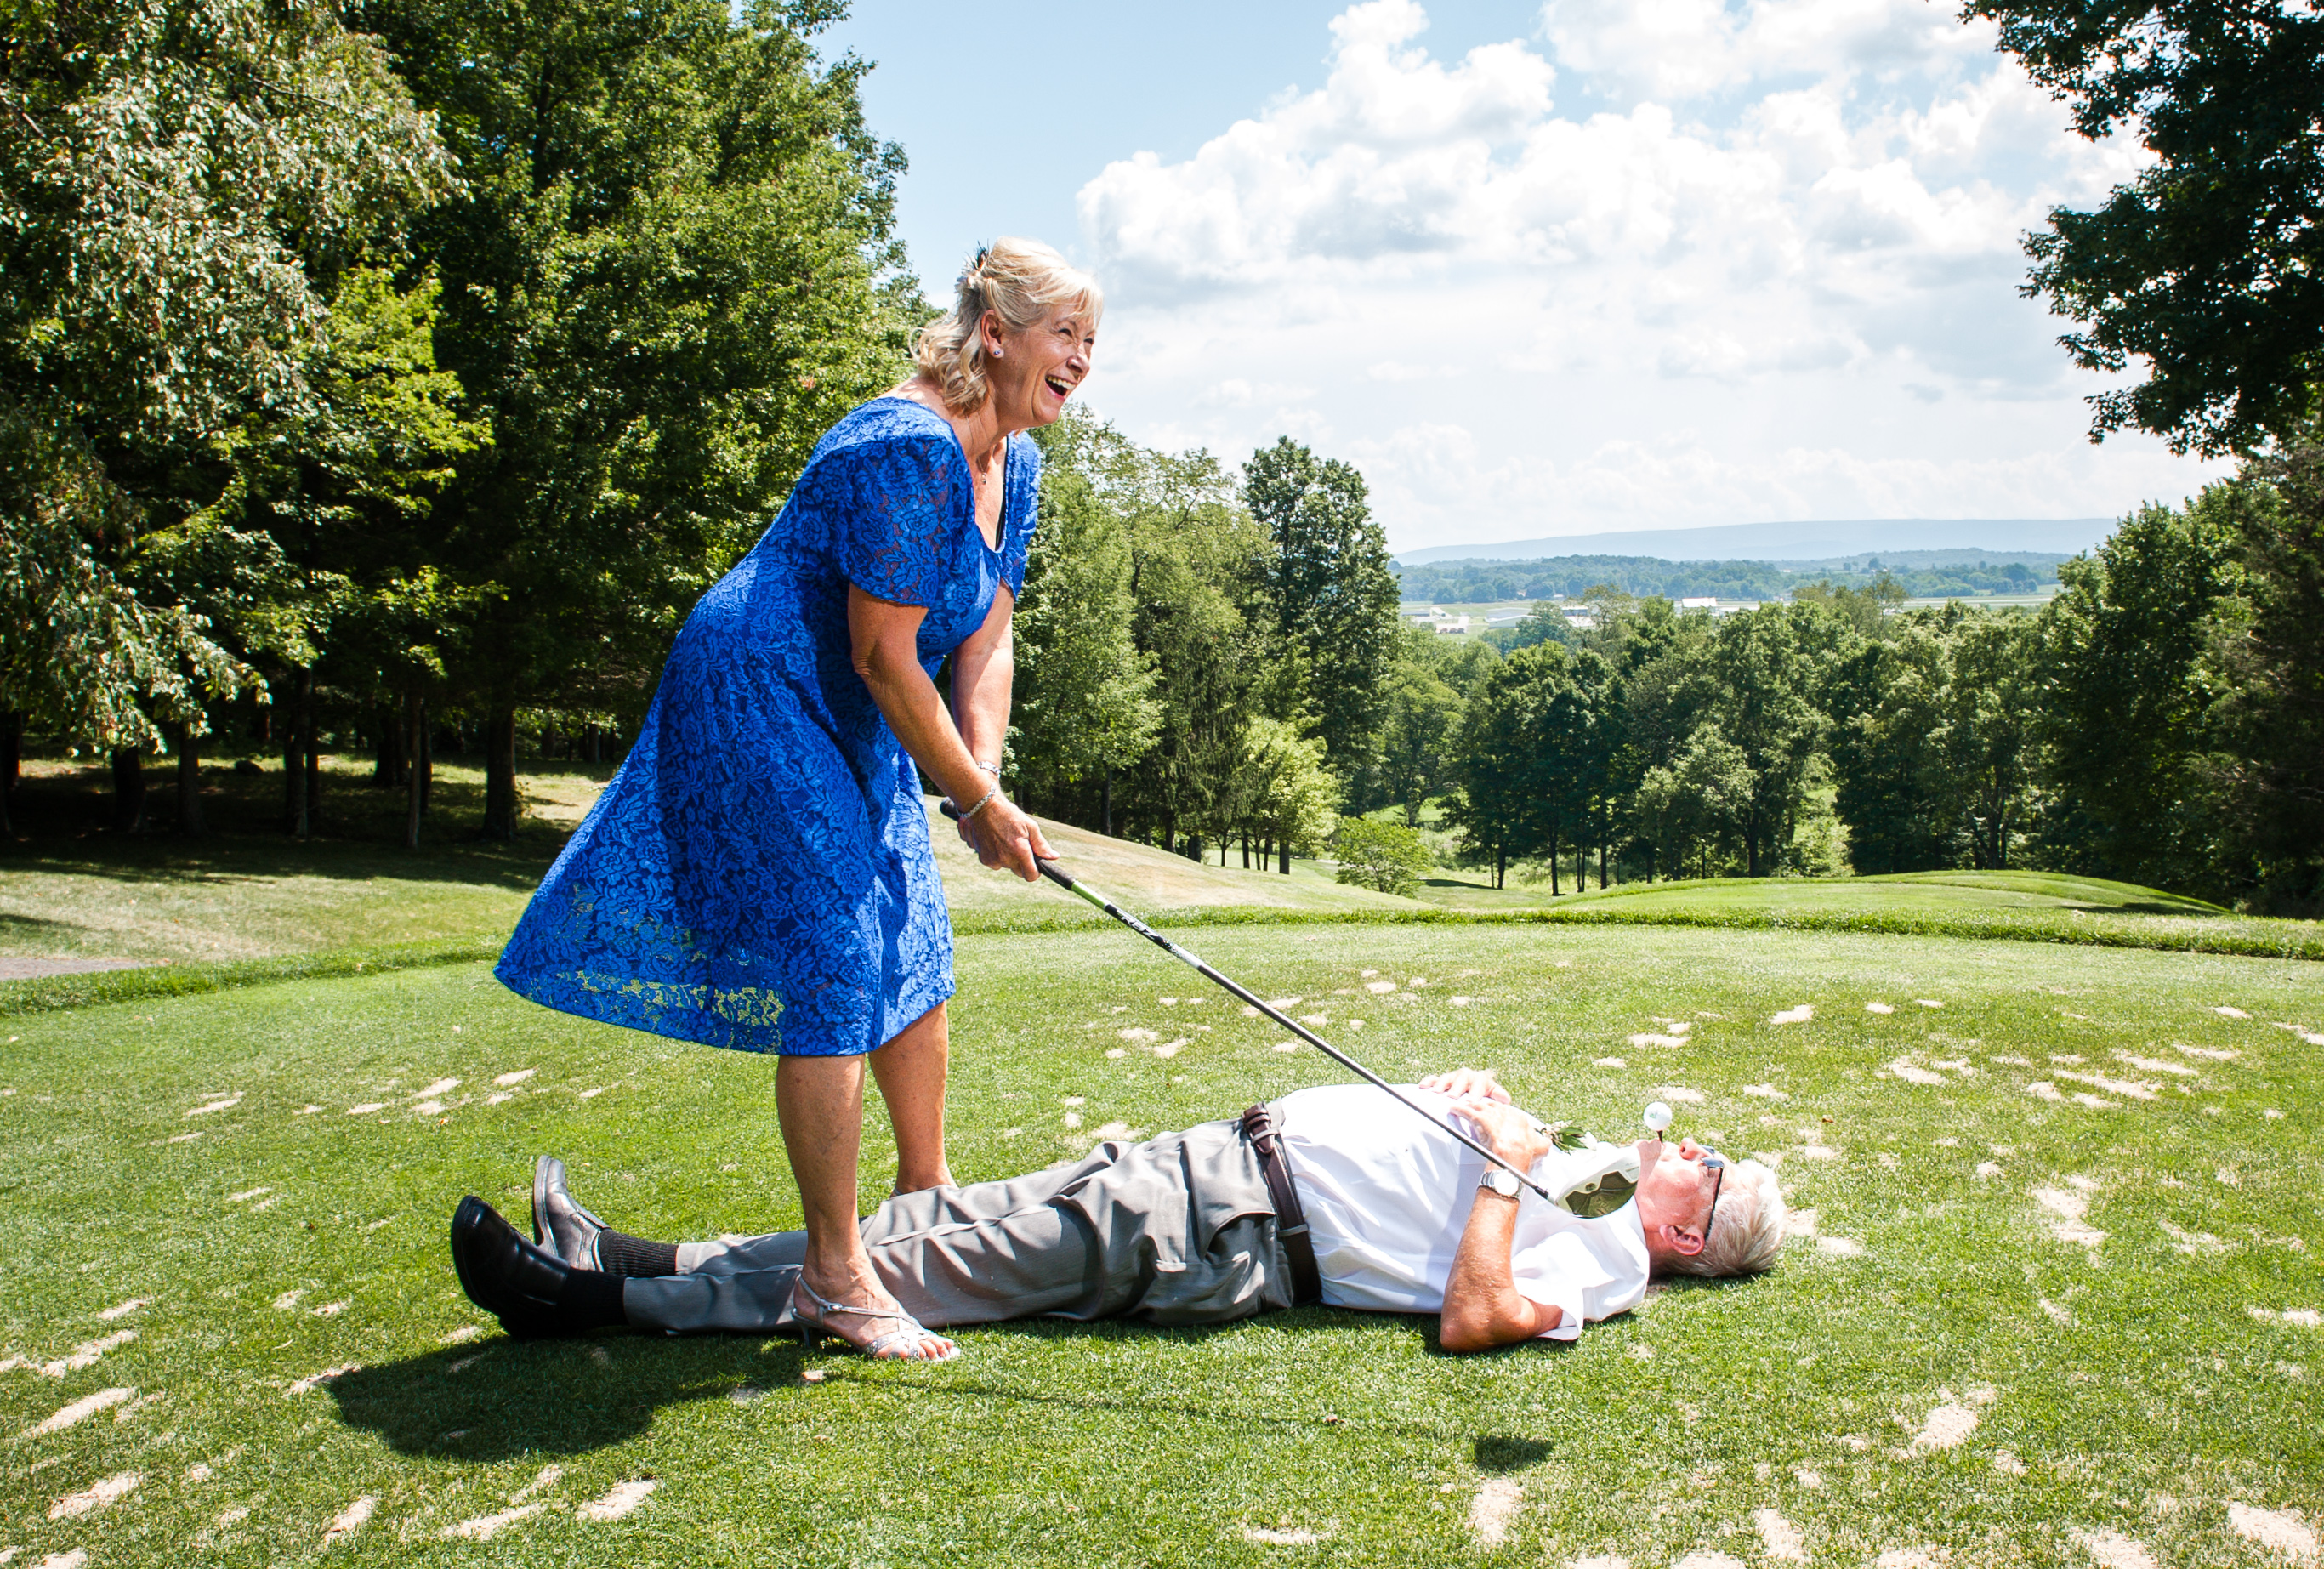 Bride and Groom Golf Portrait at Winding Hills Golf Club